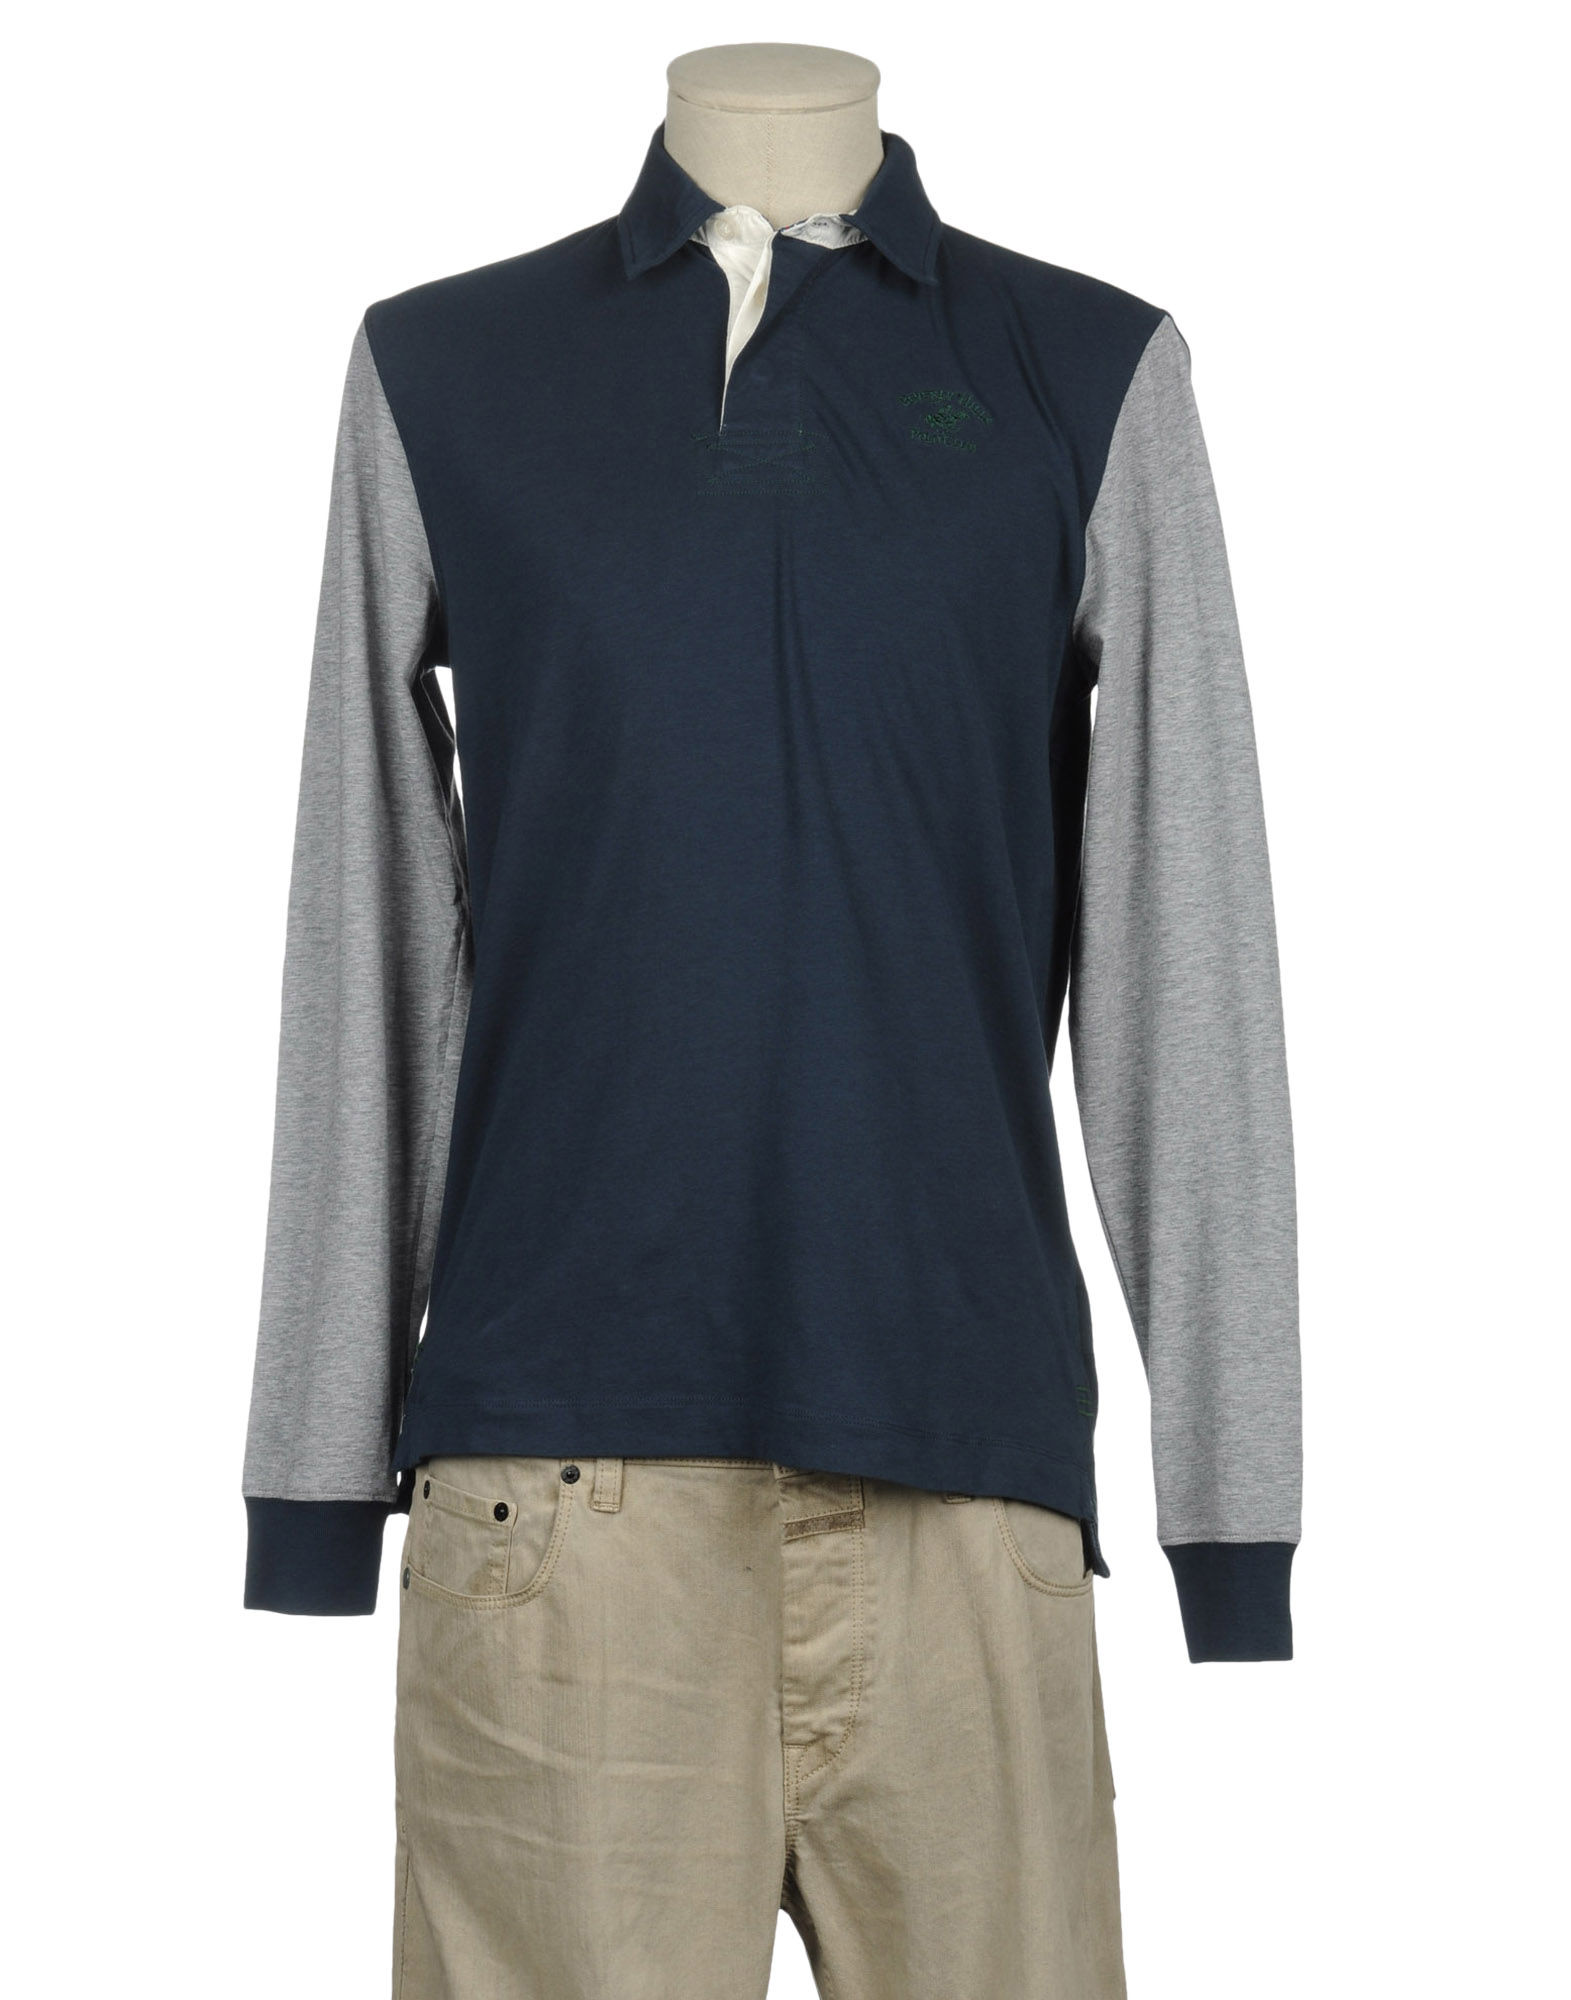 Beverly hills stores clothing